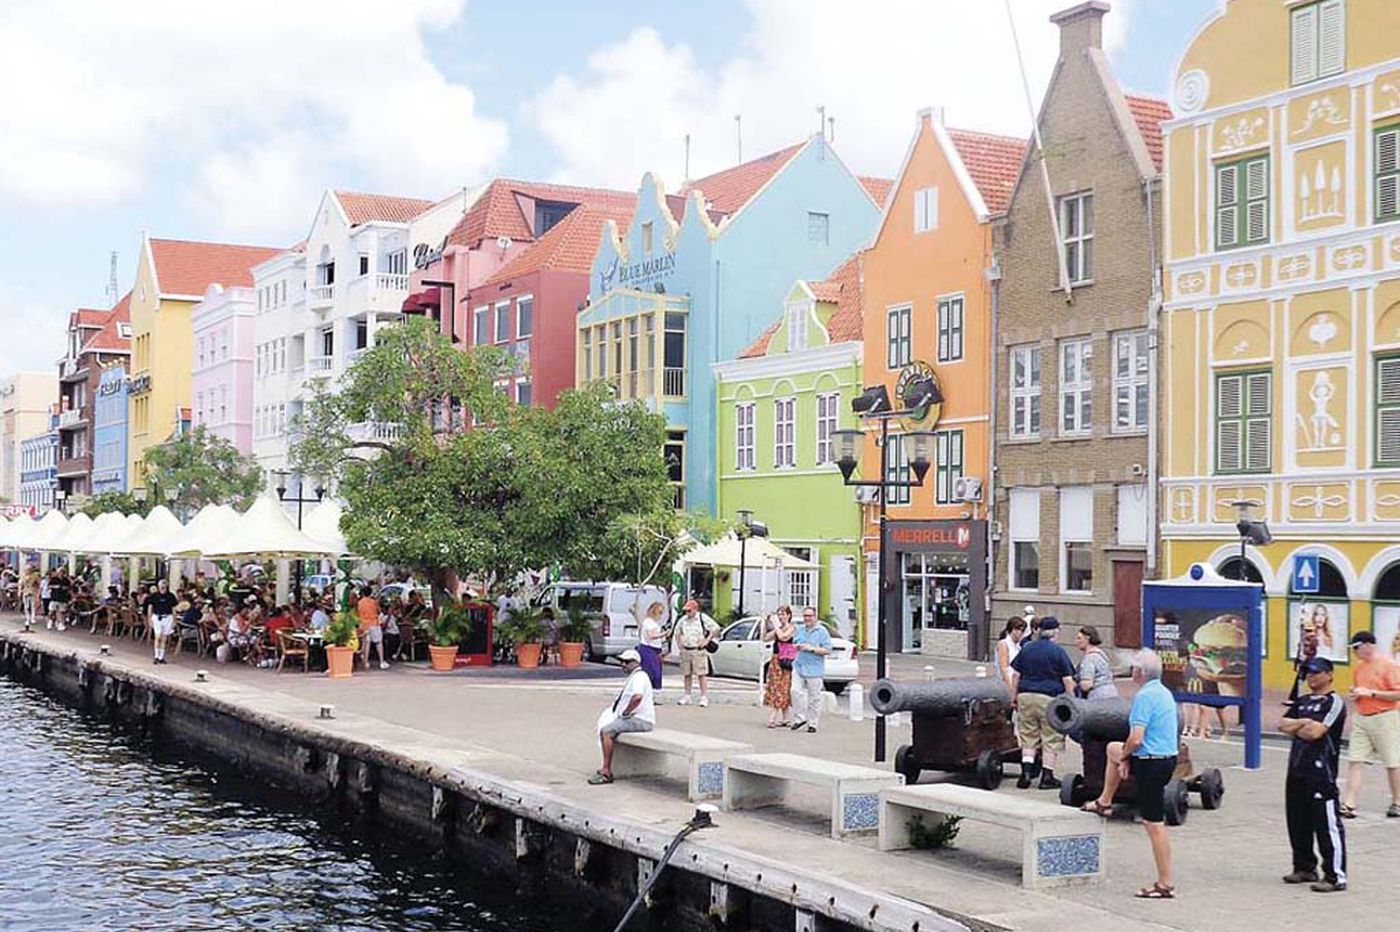 Curaçao displays Caribbean flair with Dutch roots